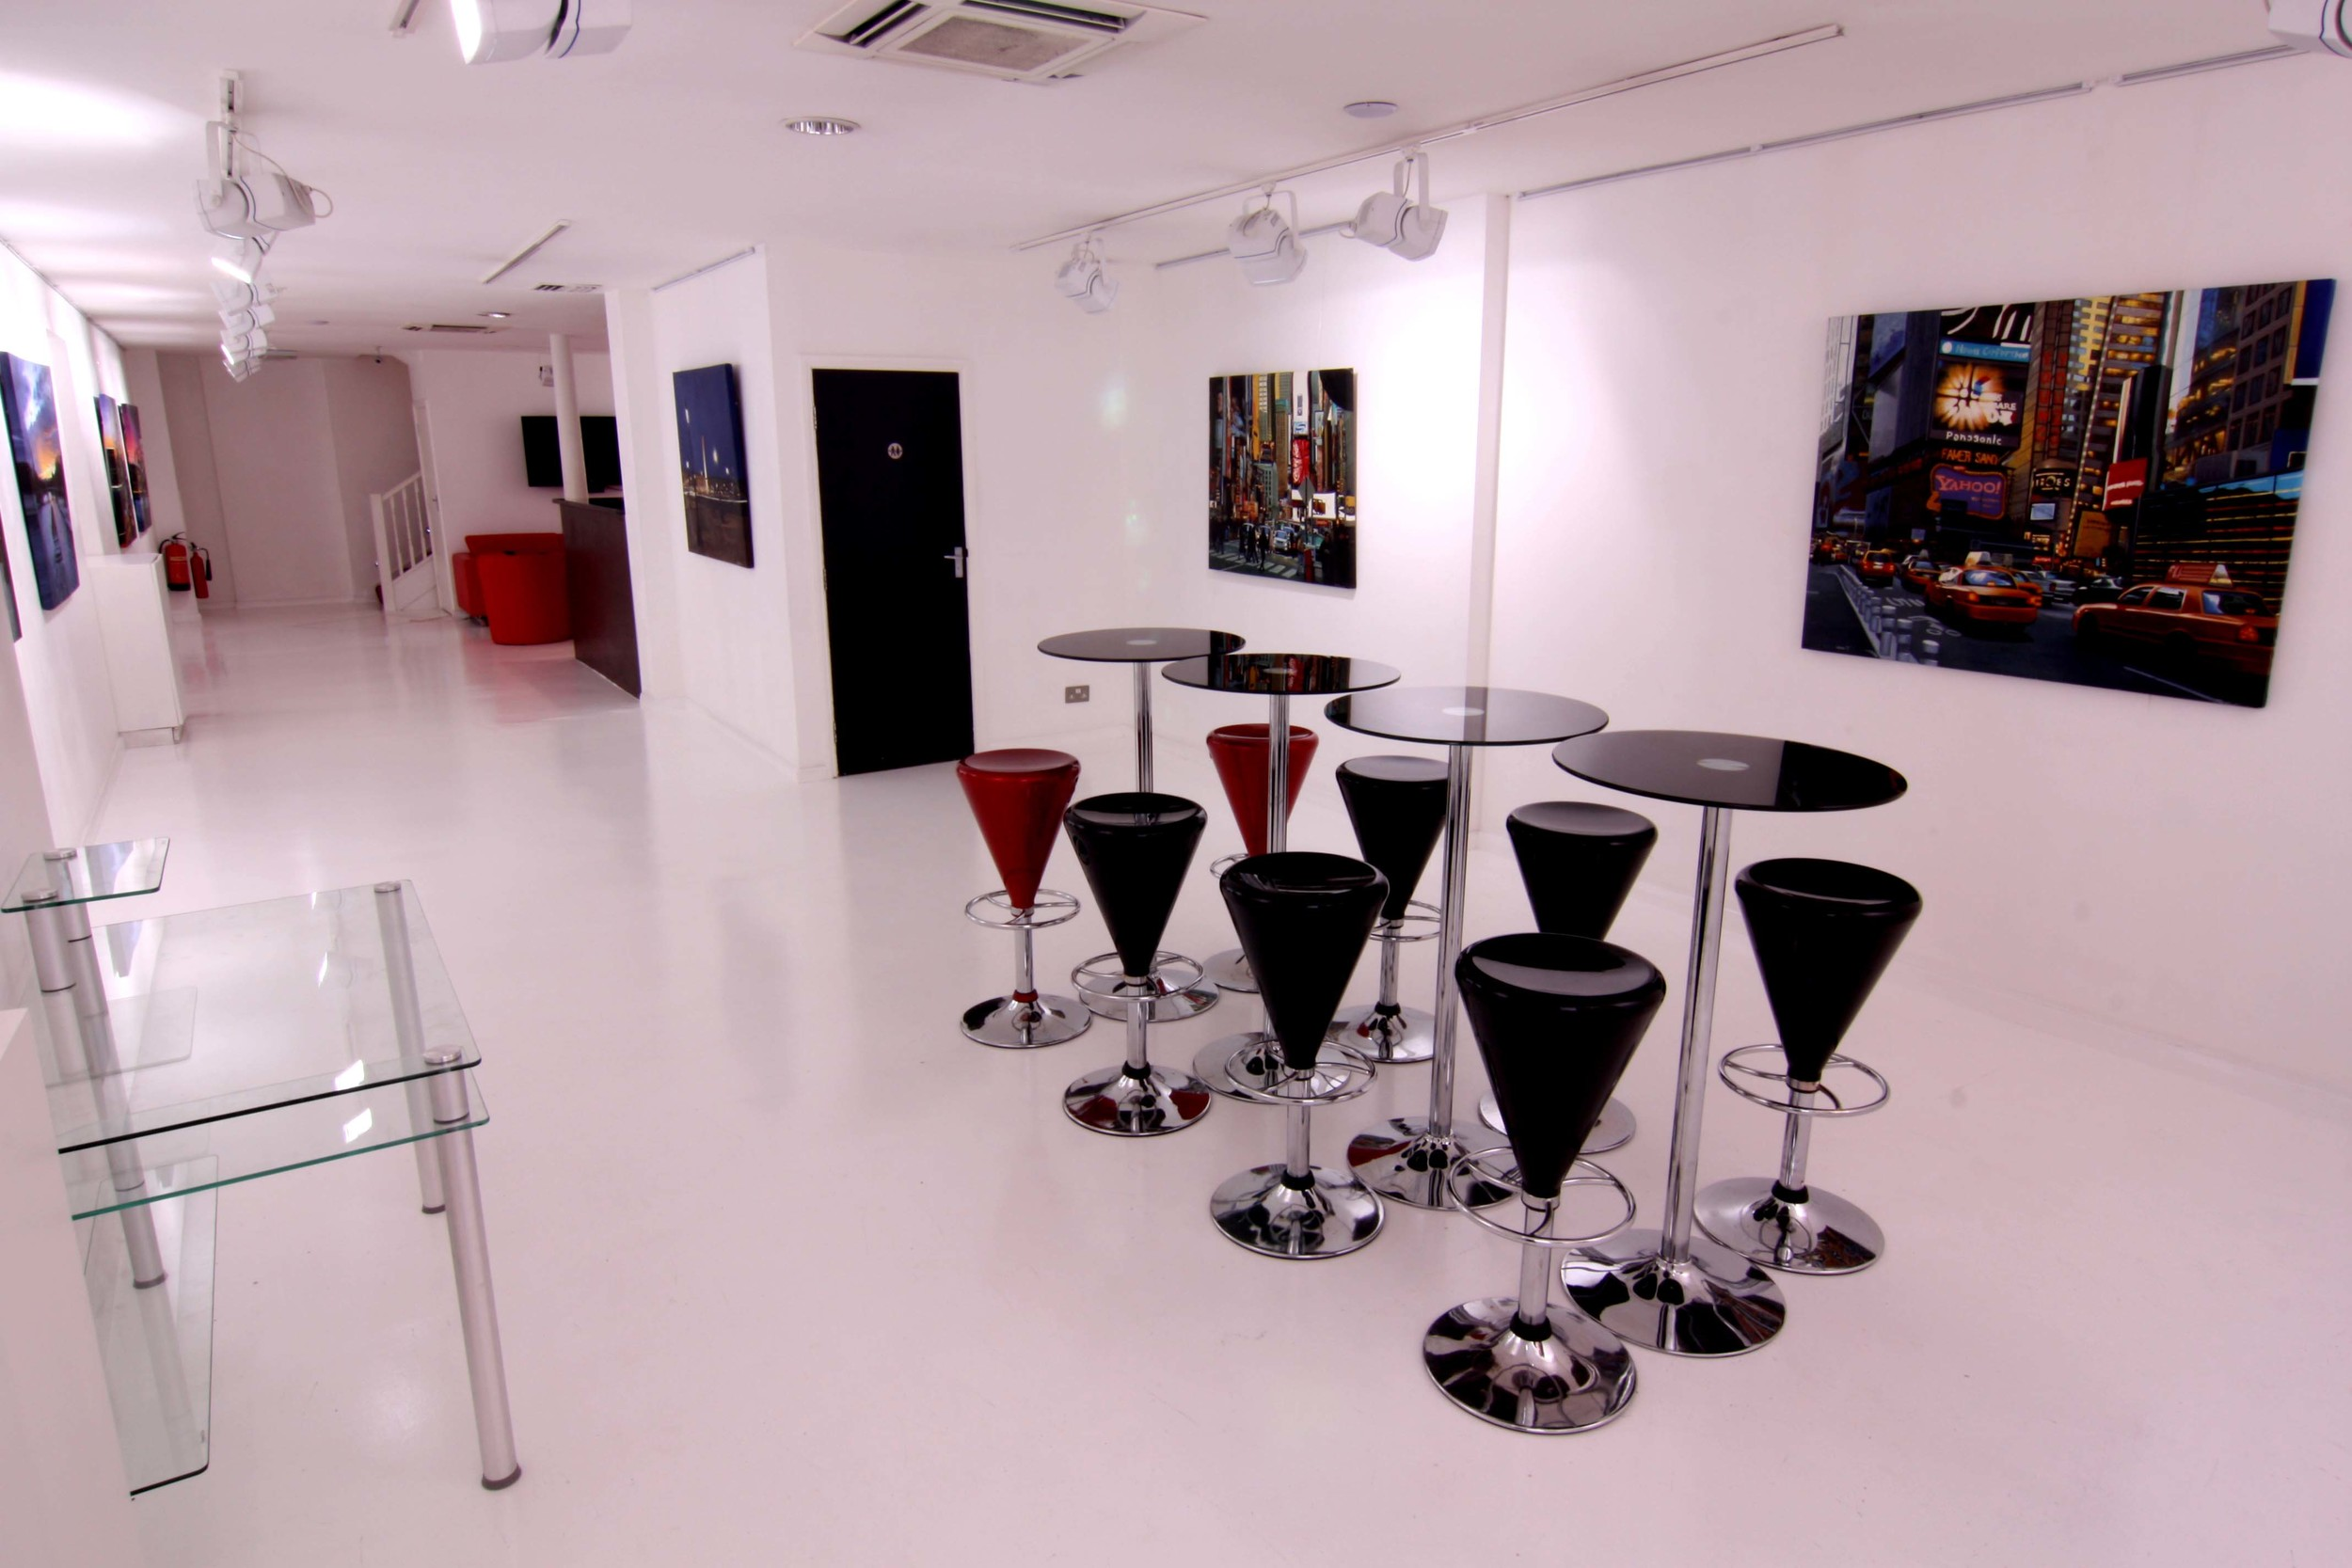 gallery pictures london 006.jpg